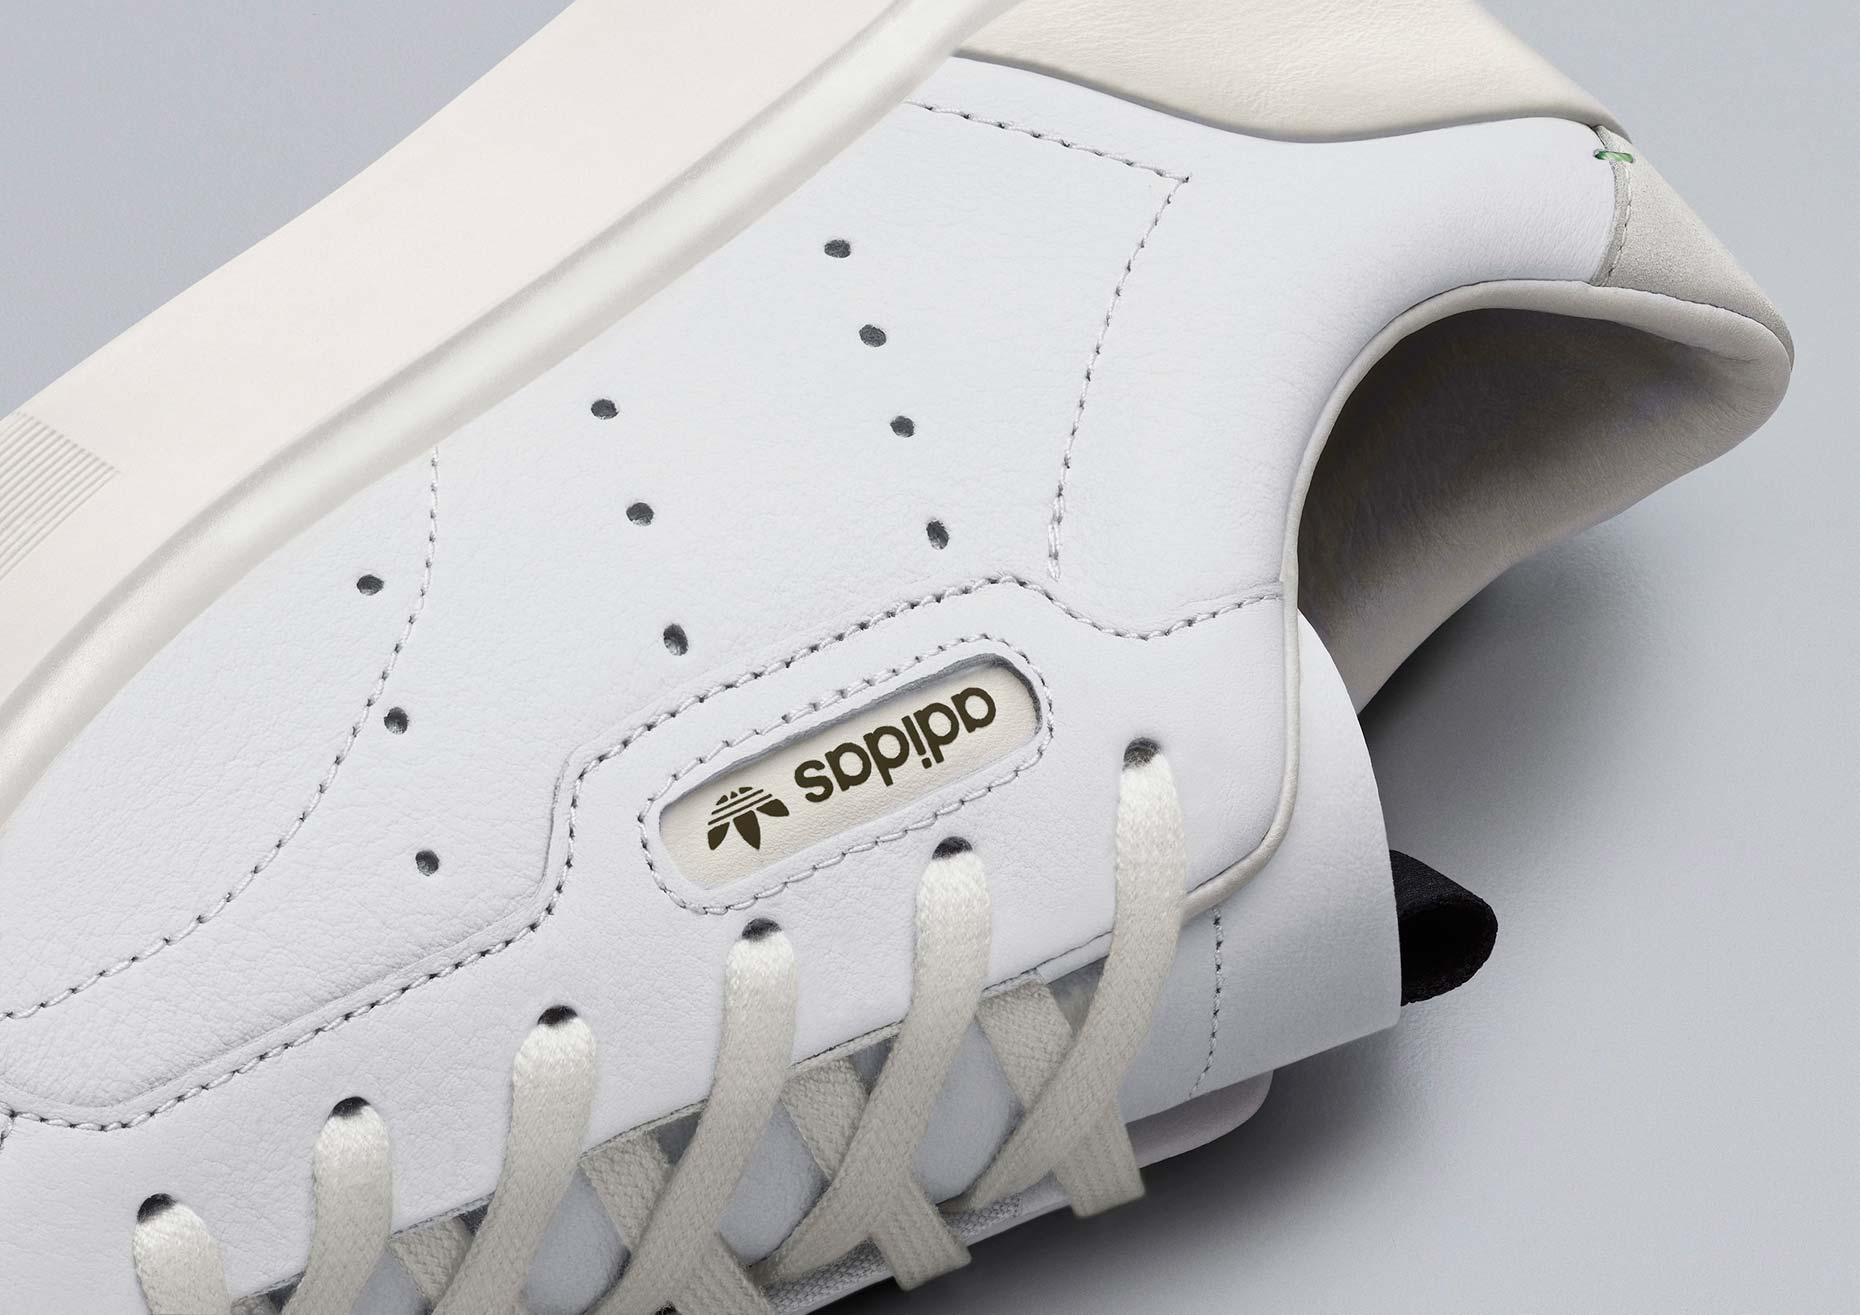 adidasOriginals_SS19_Sleek_SleekW_CG6199_01_Detail_COMP_c